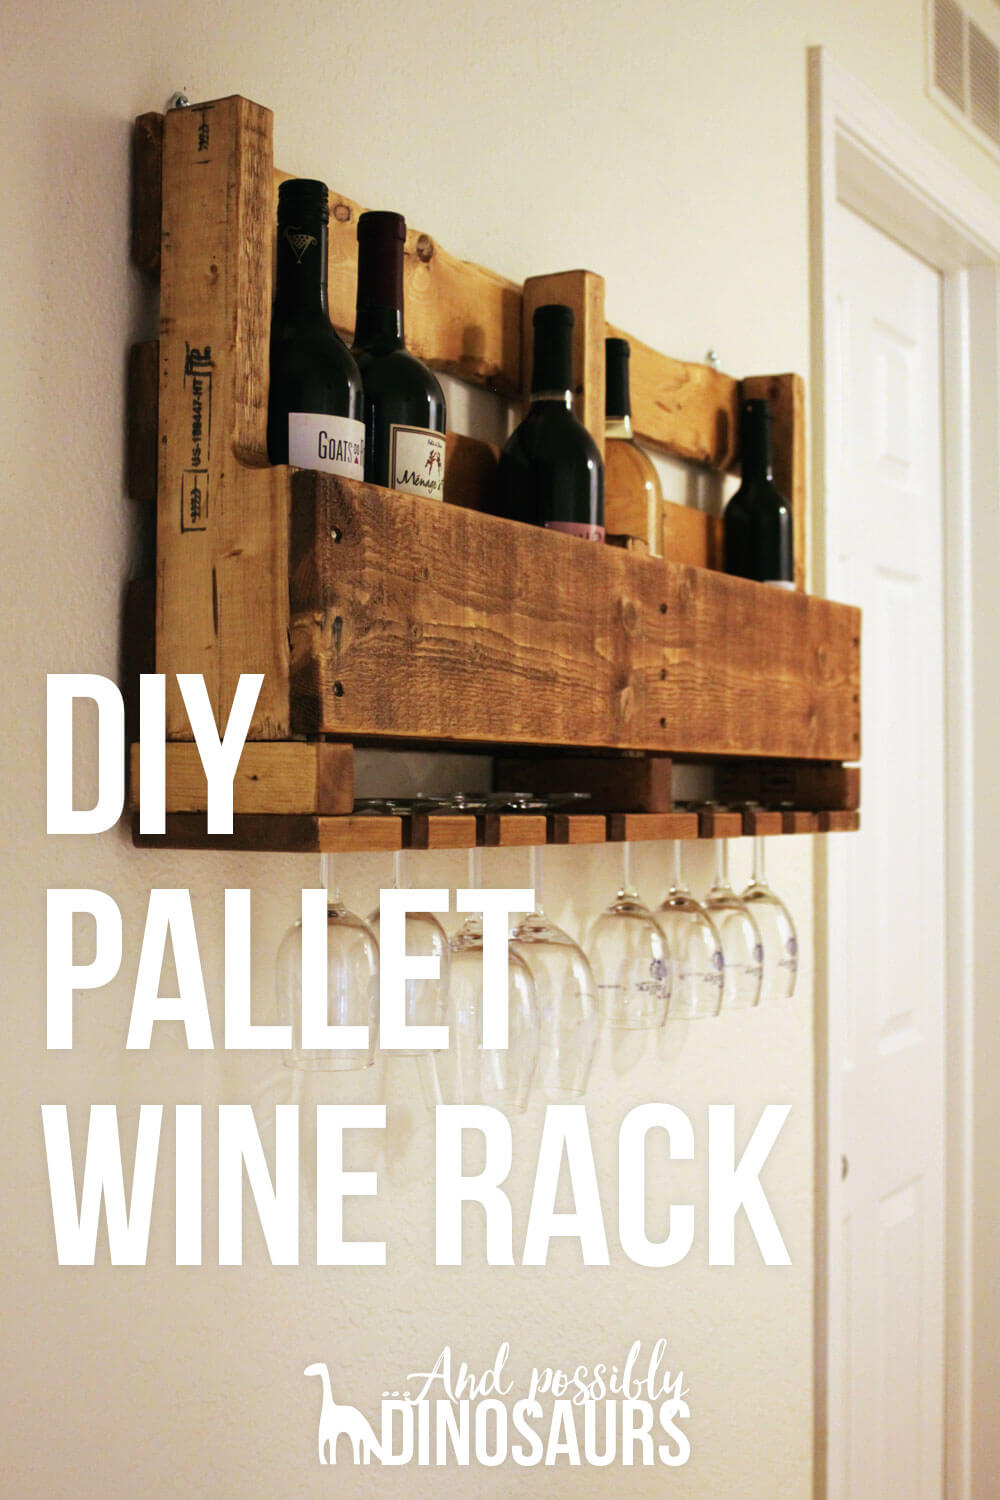 DIY Wine Rack From A Pallet And Possibly Dinosaurs